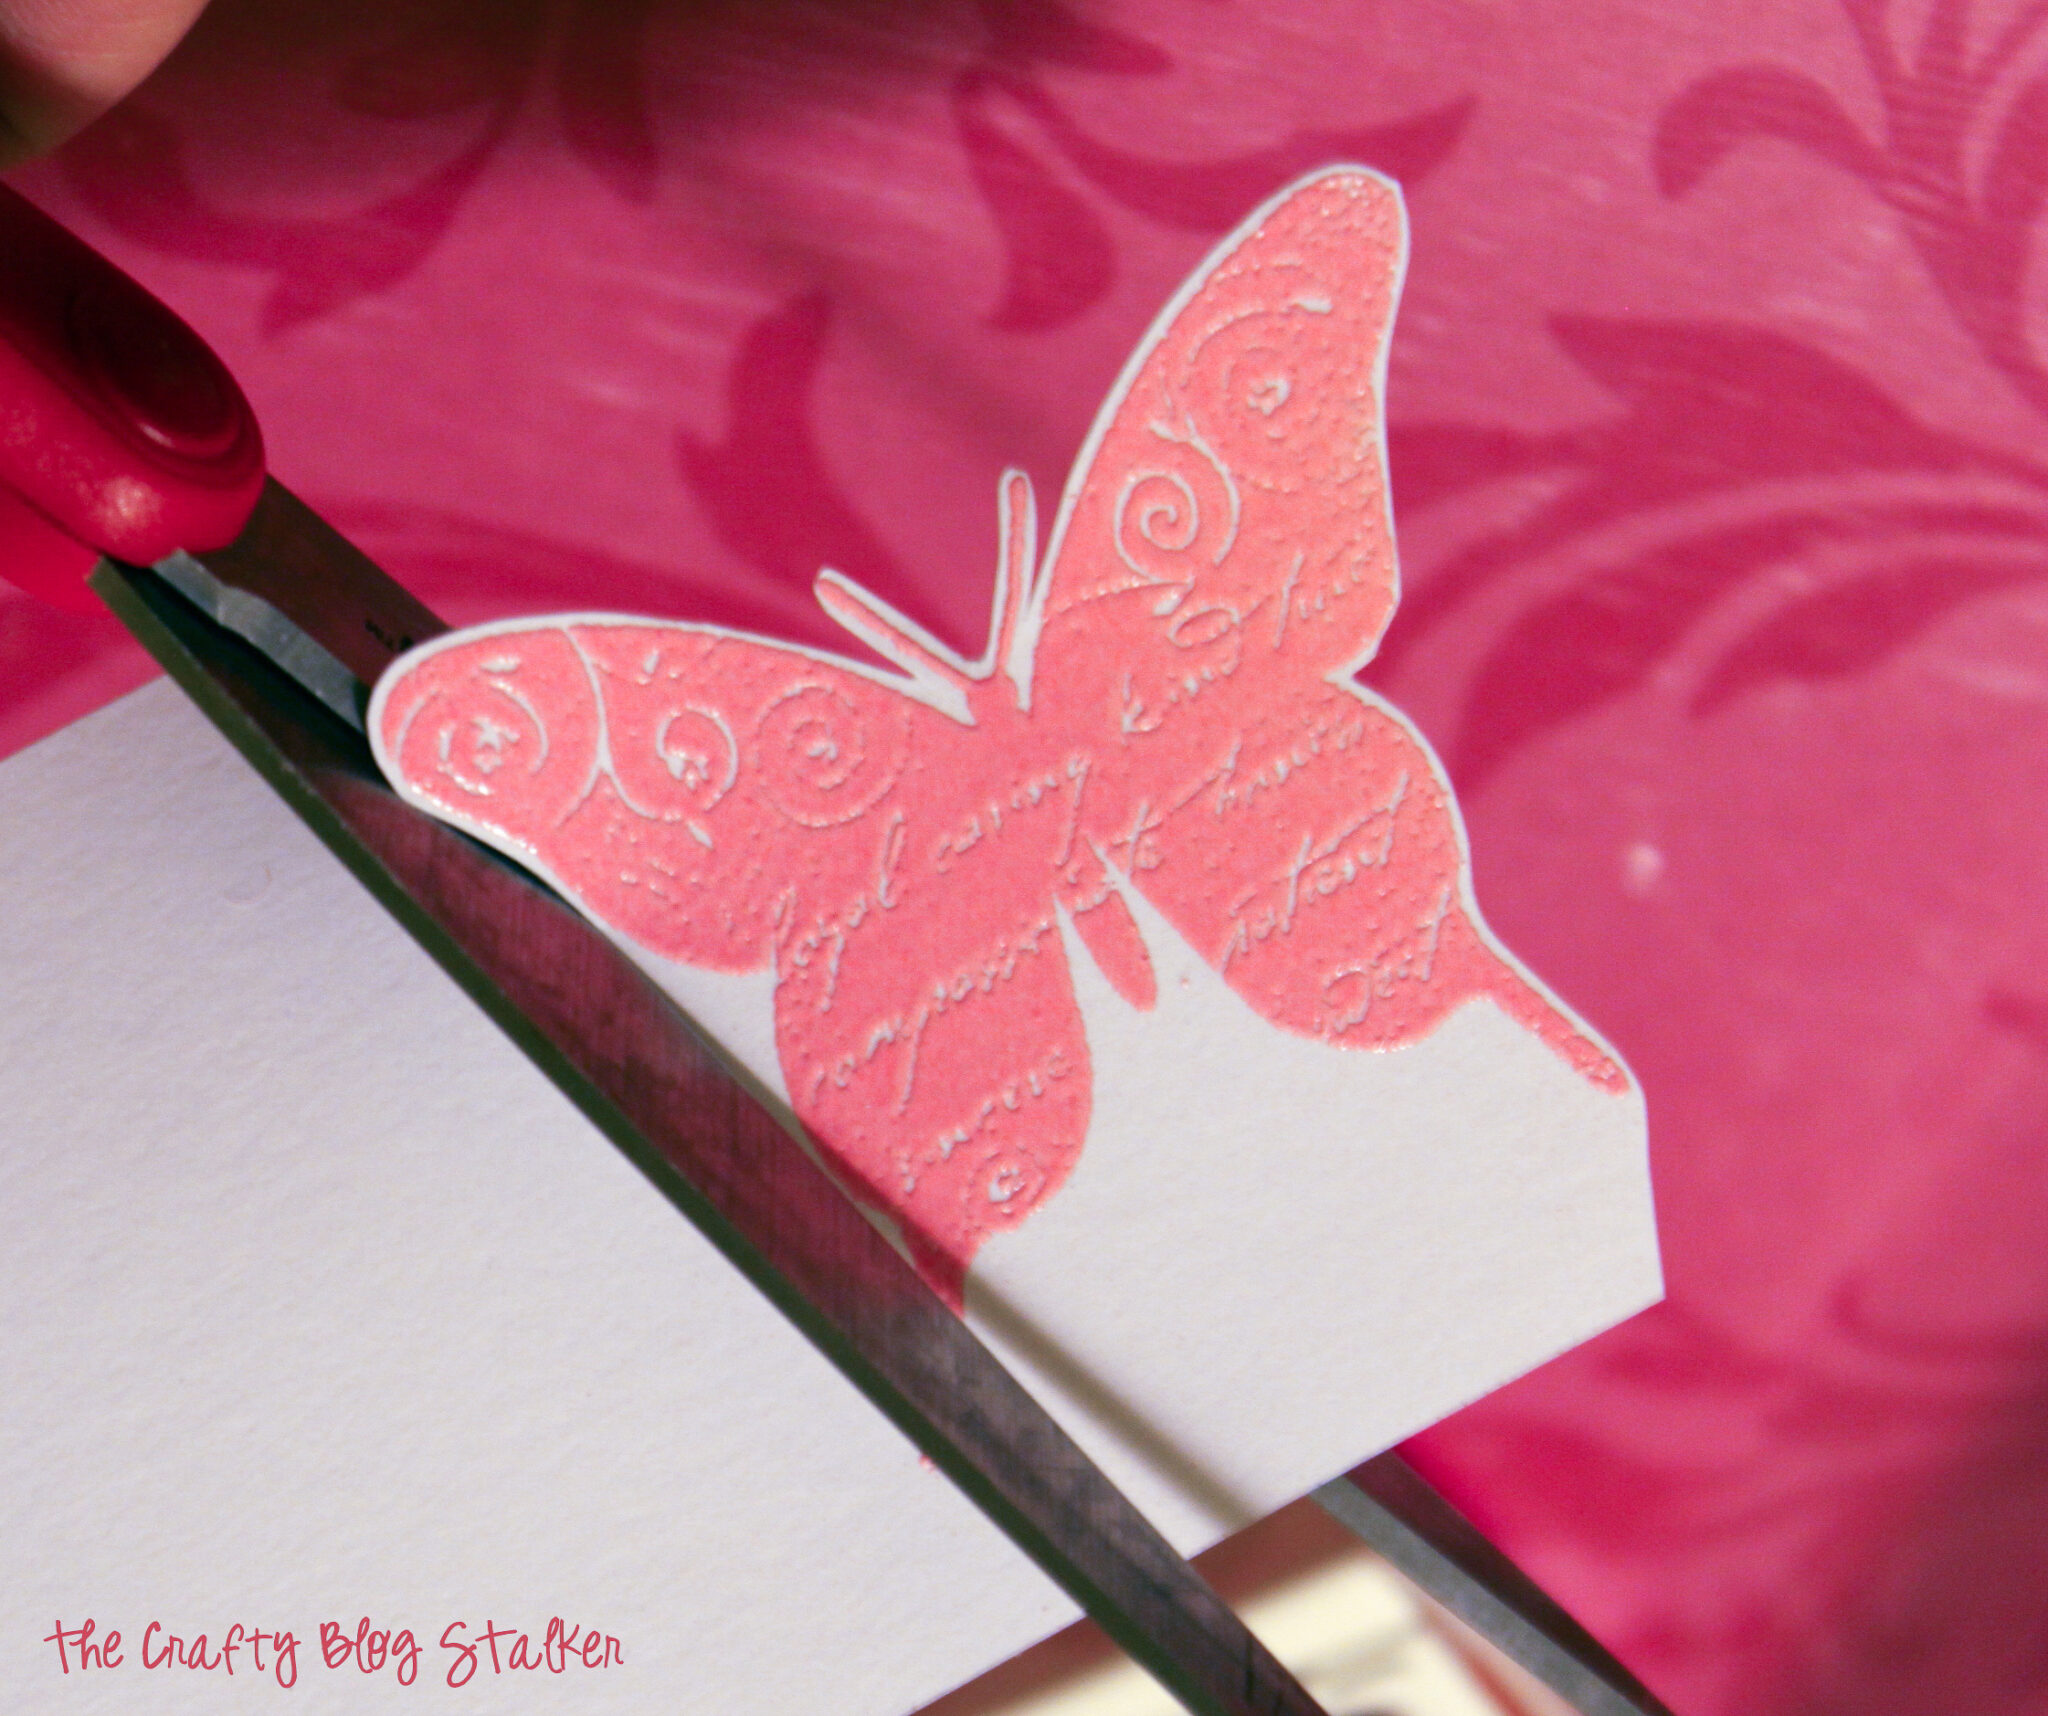 image of cutting out the butterfly shape